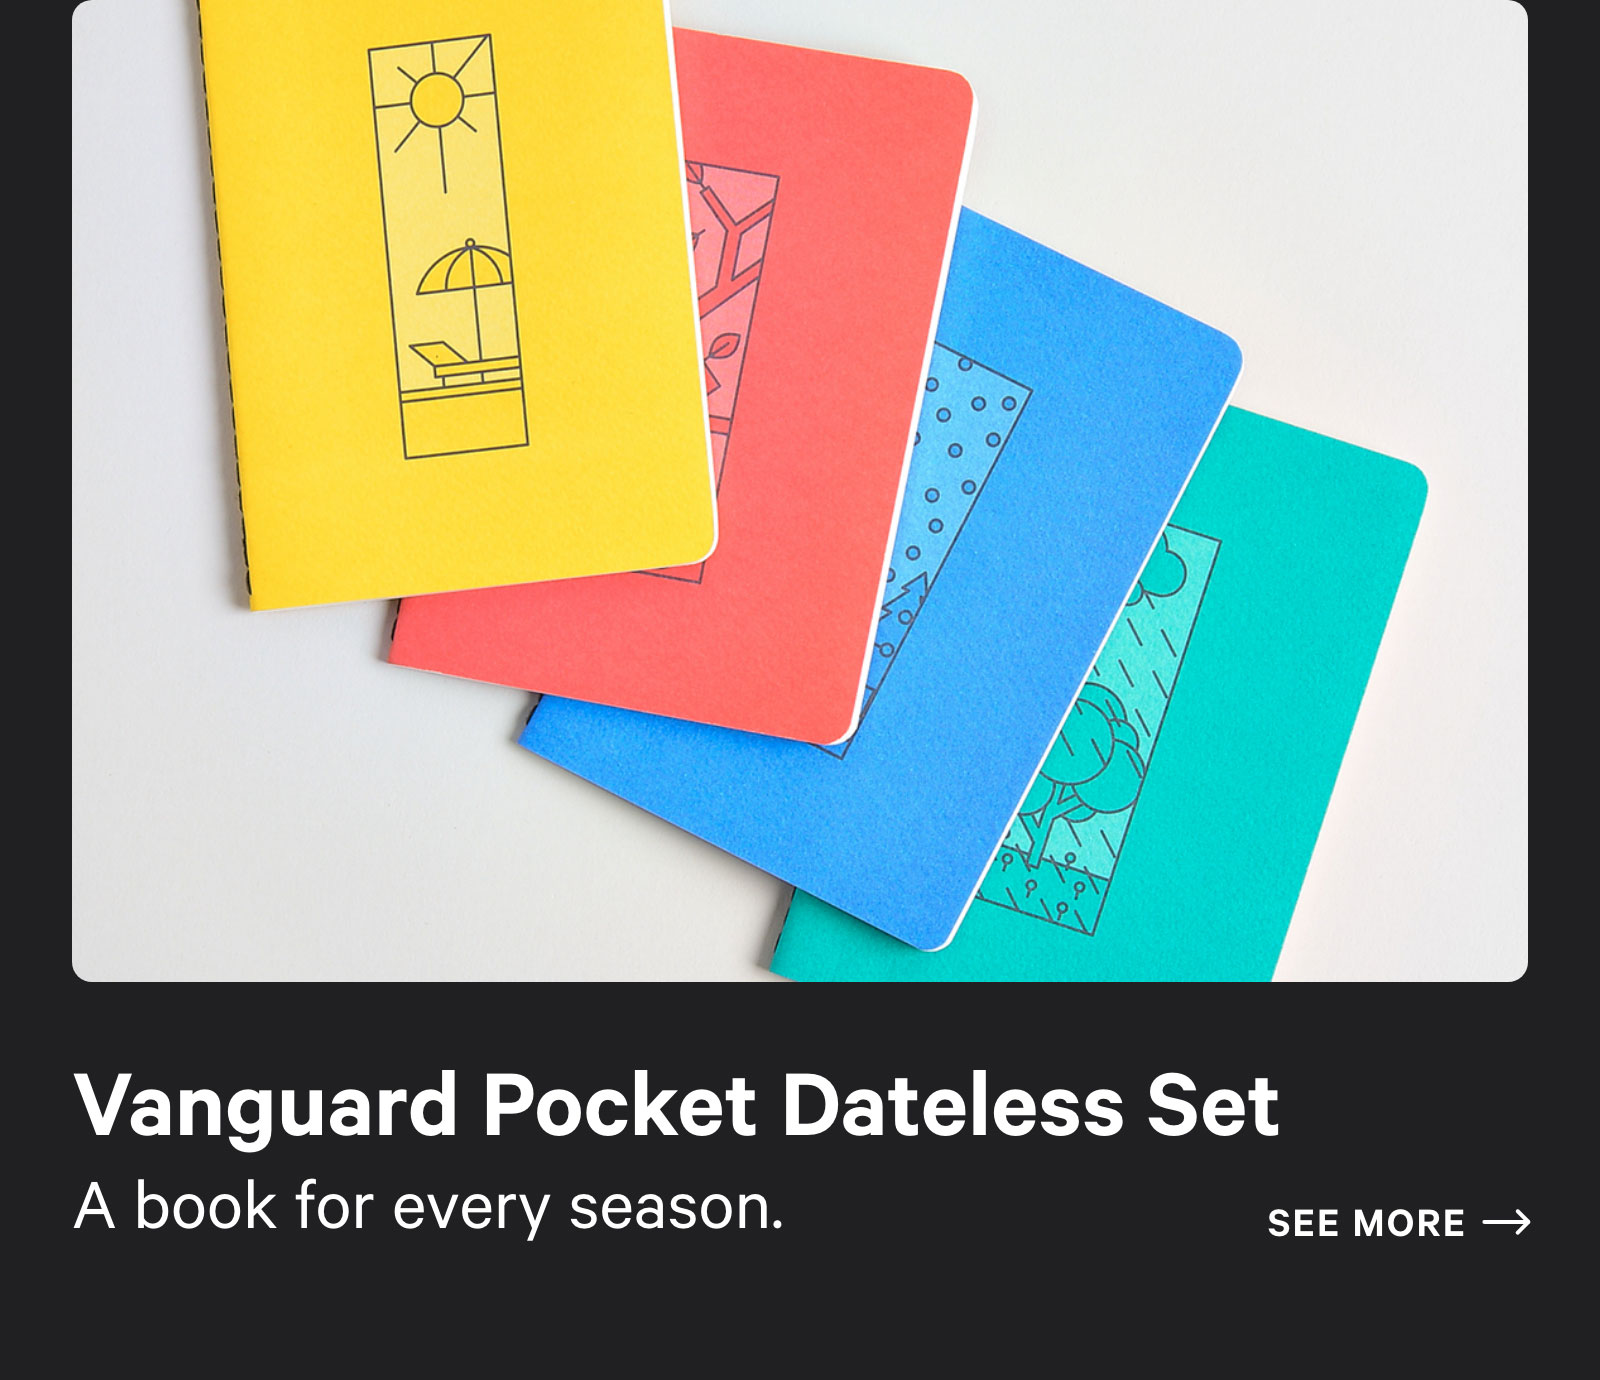 Vangaurd Pocket Dateless Set. A book for every season. See more ?